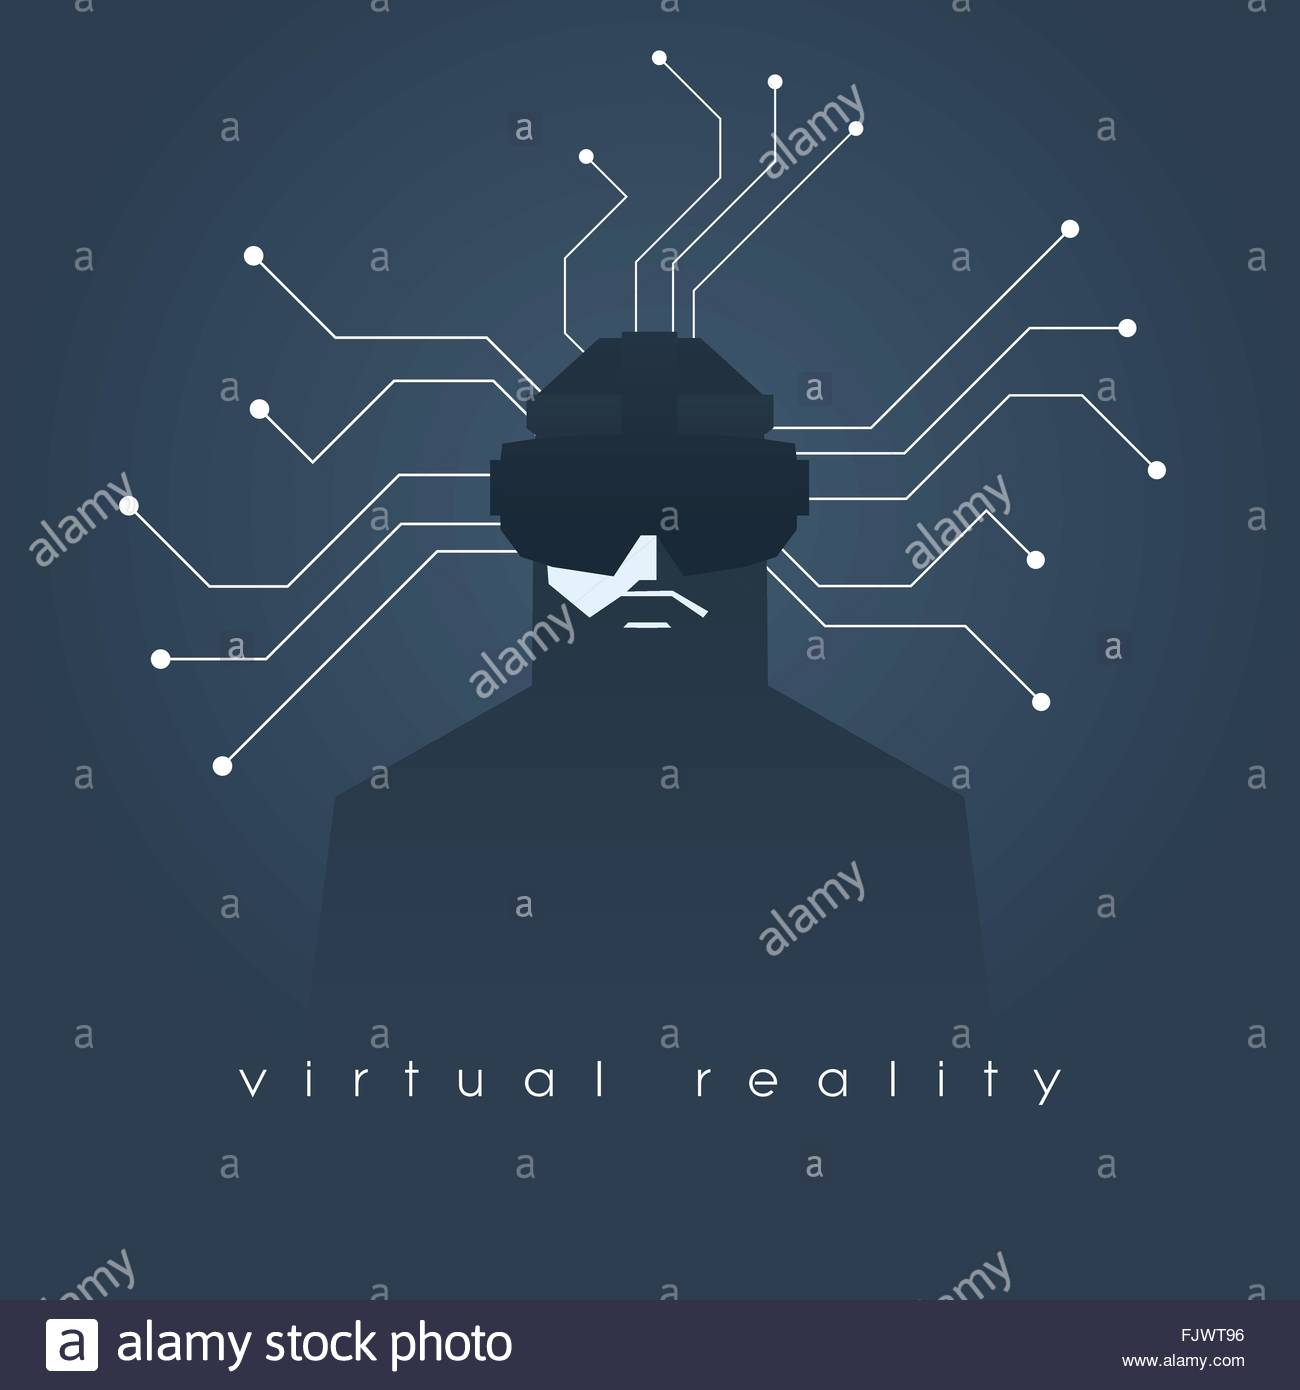 Virtual reality concept illustration with man and headset glasses. Dark background, lines as symbol of internet - Stock Image